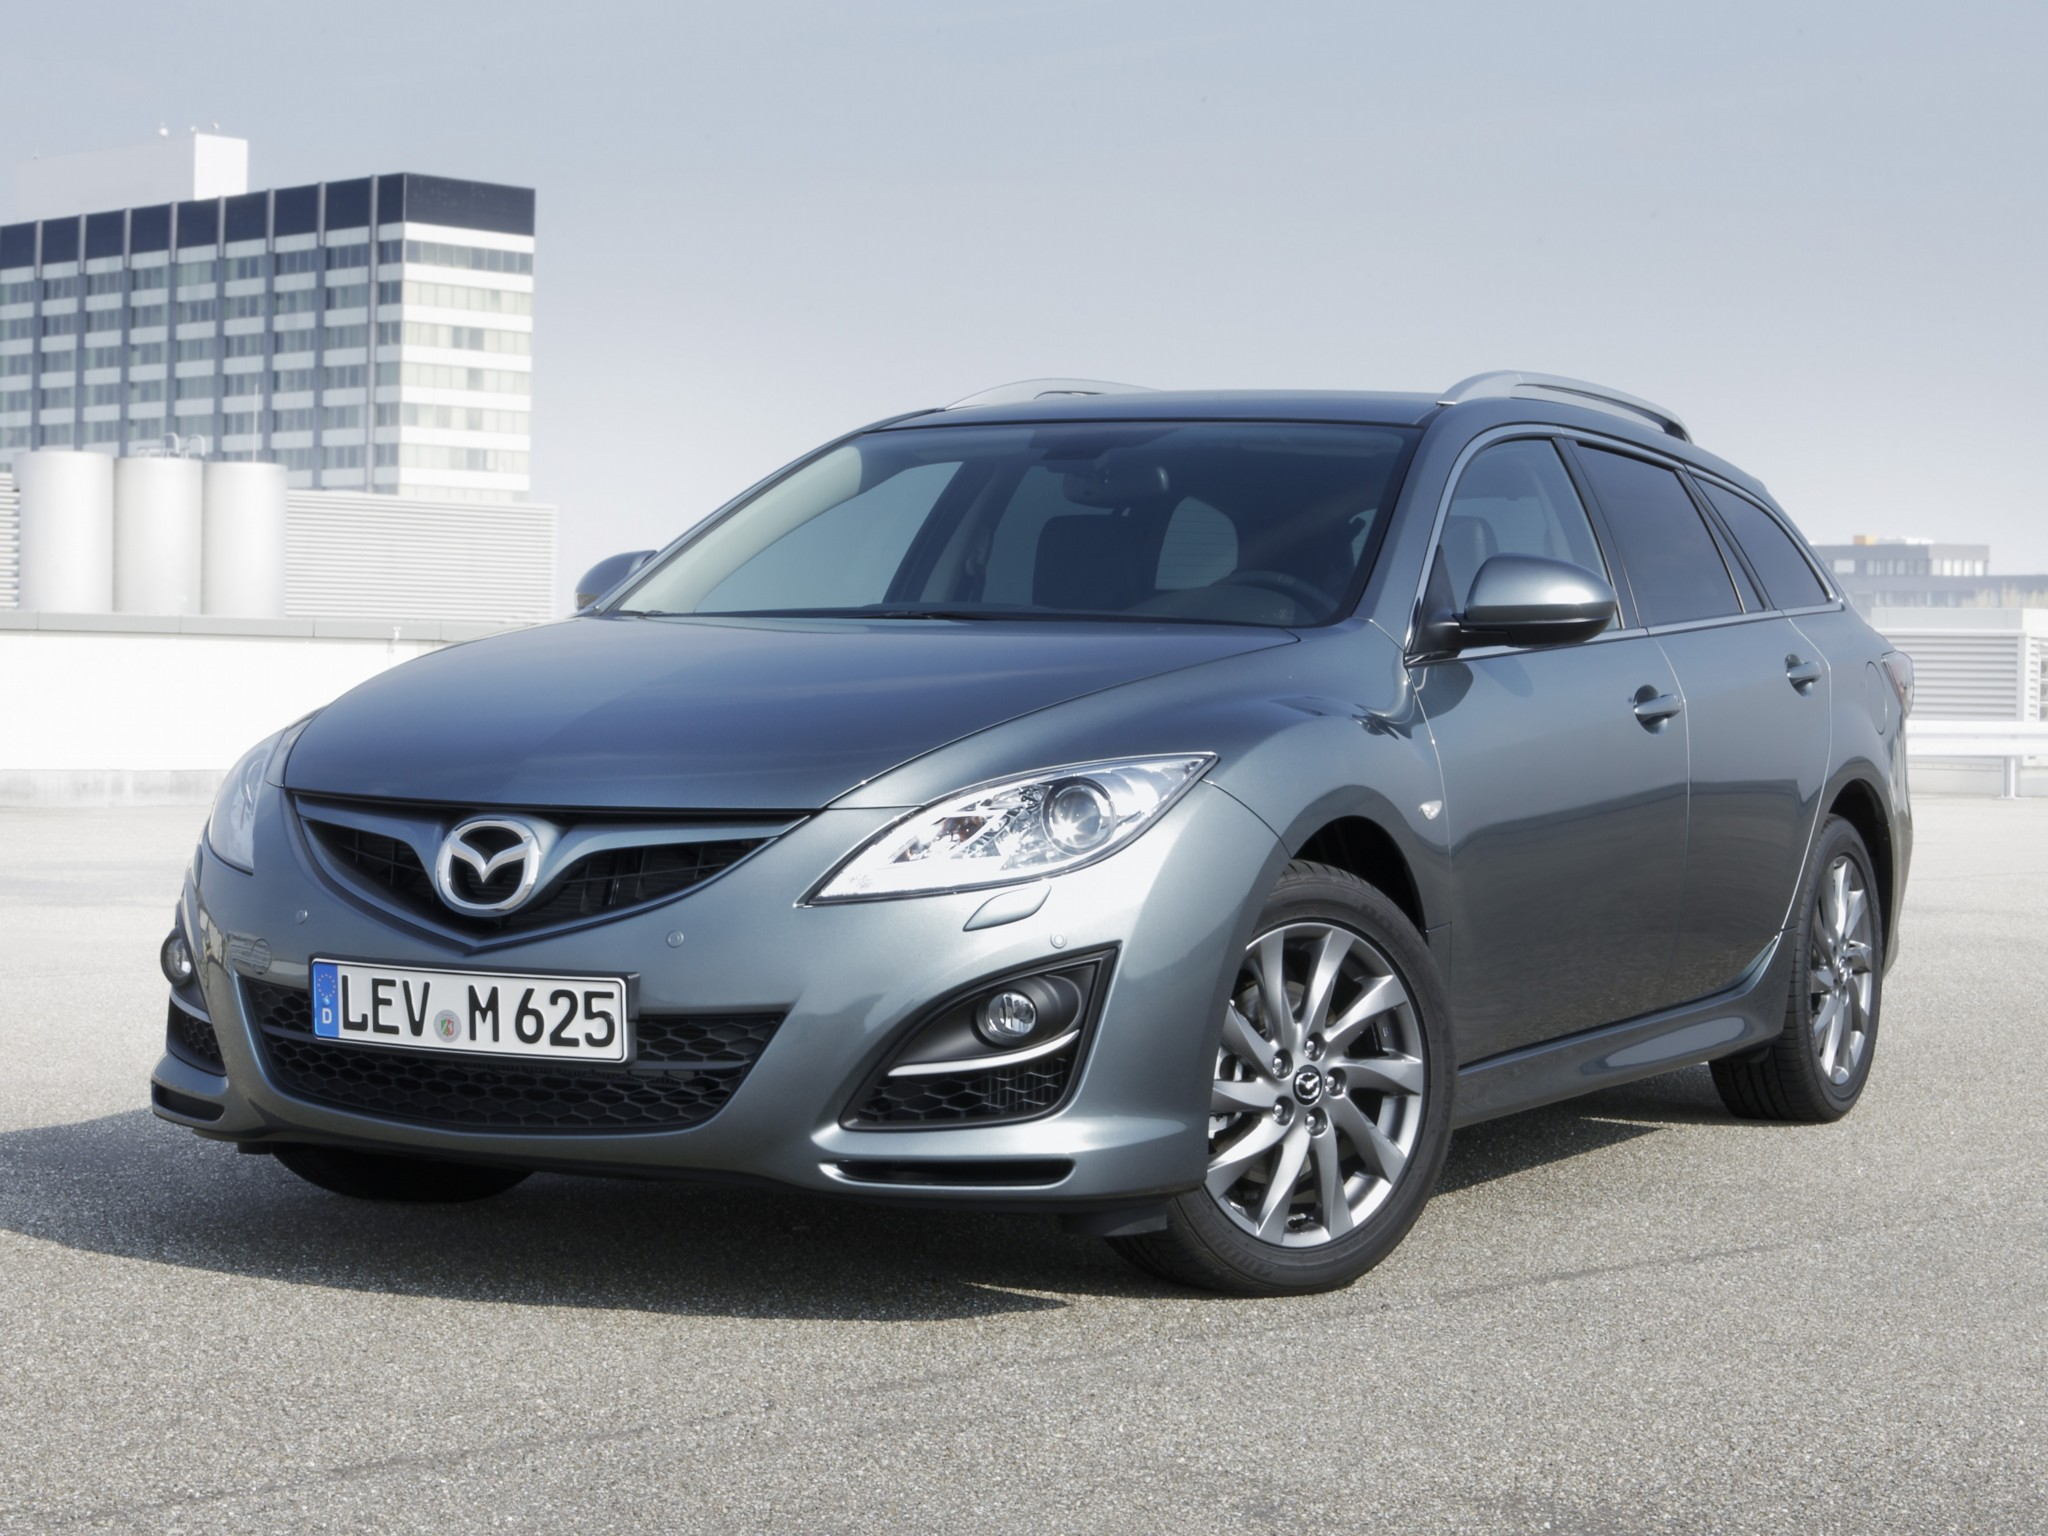 2012 Mazda 6 Wagon Edition 40